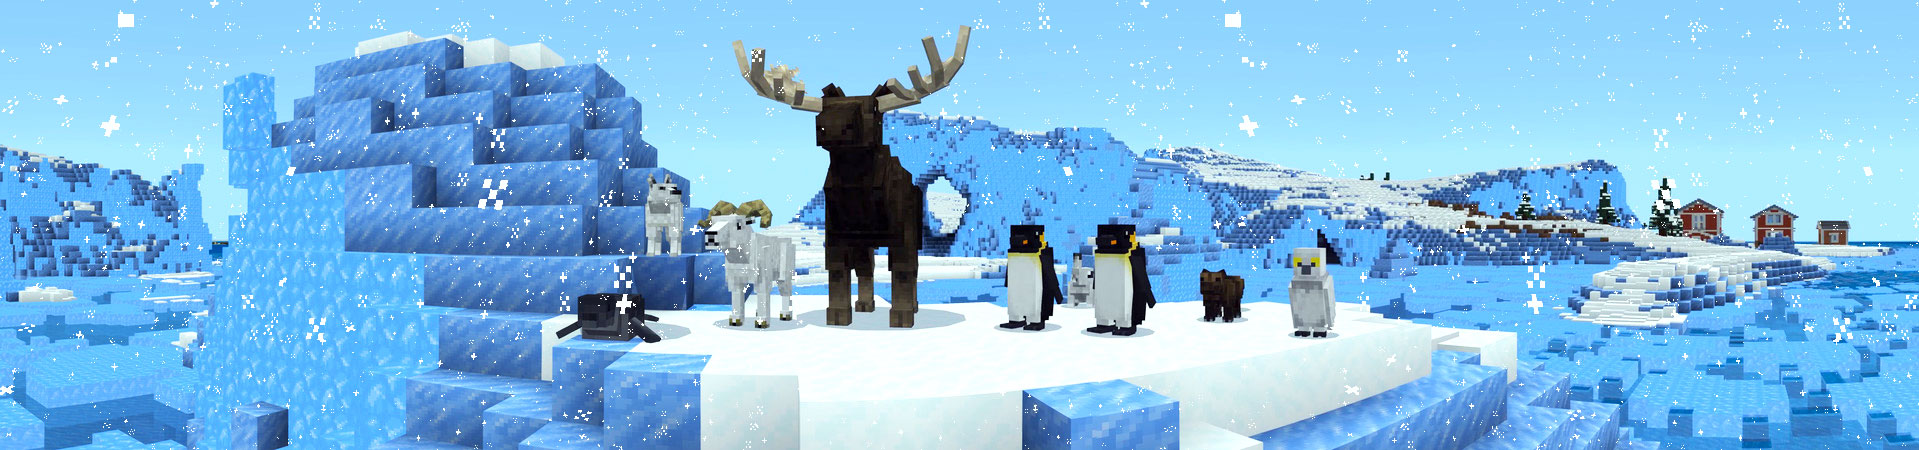 Arctic Wildlife Explorers In Minecraft Marketplace Minecraft Having ice tunnels with low ceiling was faster, still. arctic wildlife explorers in minecraft